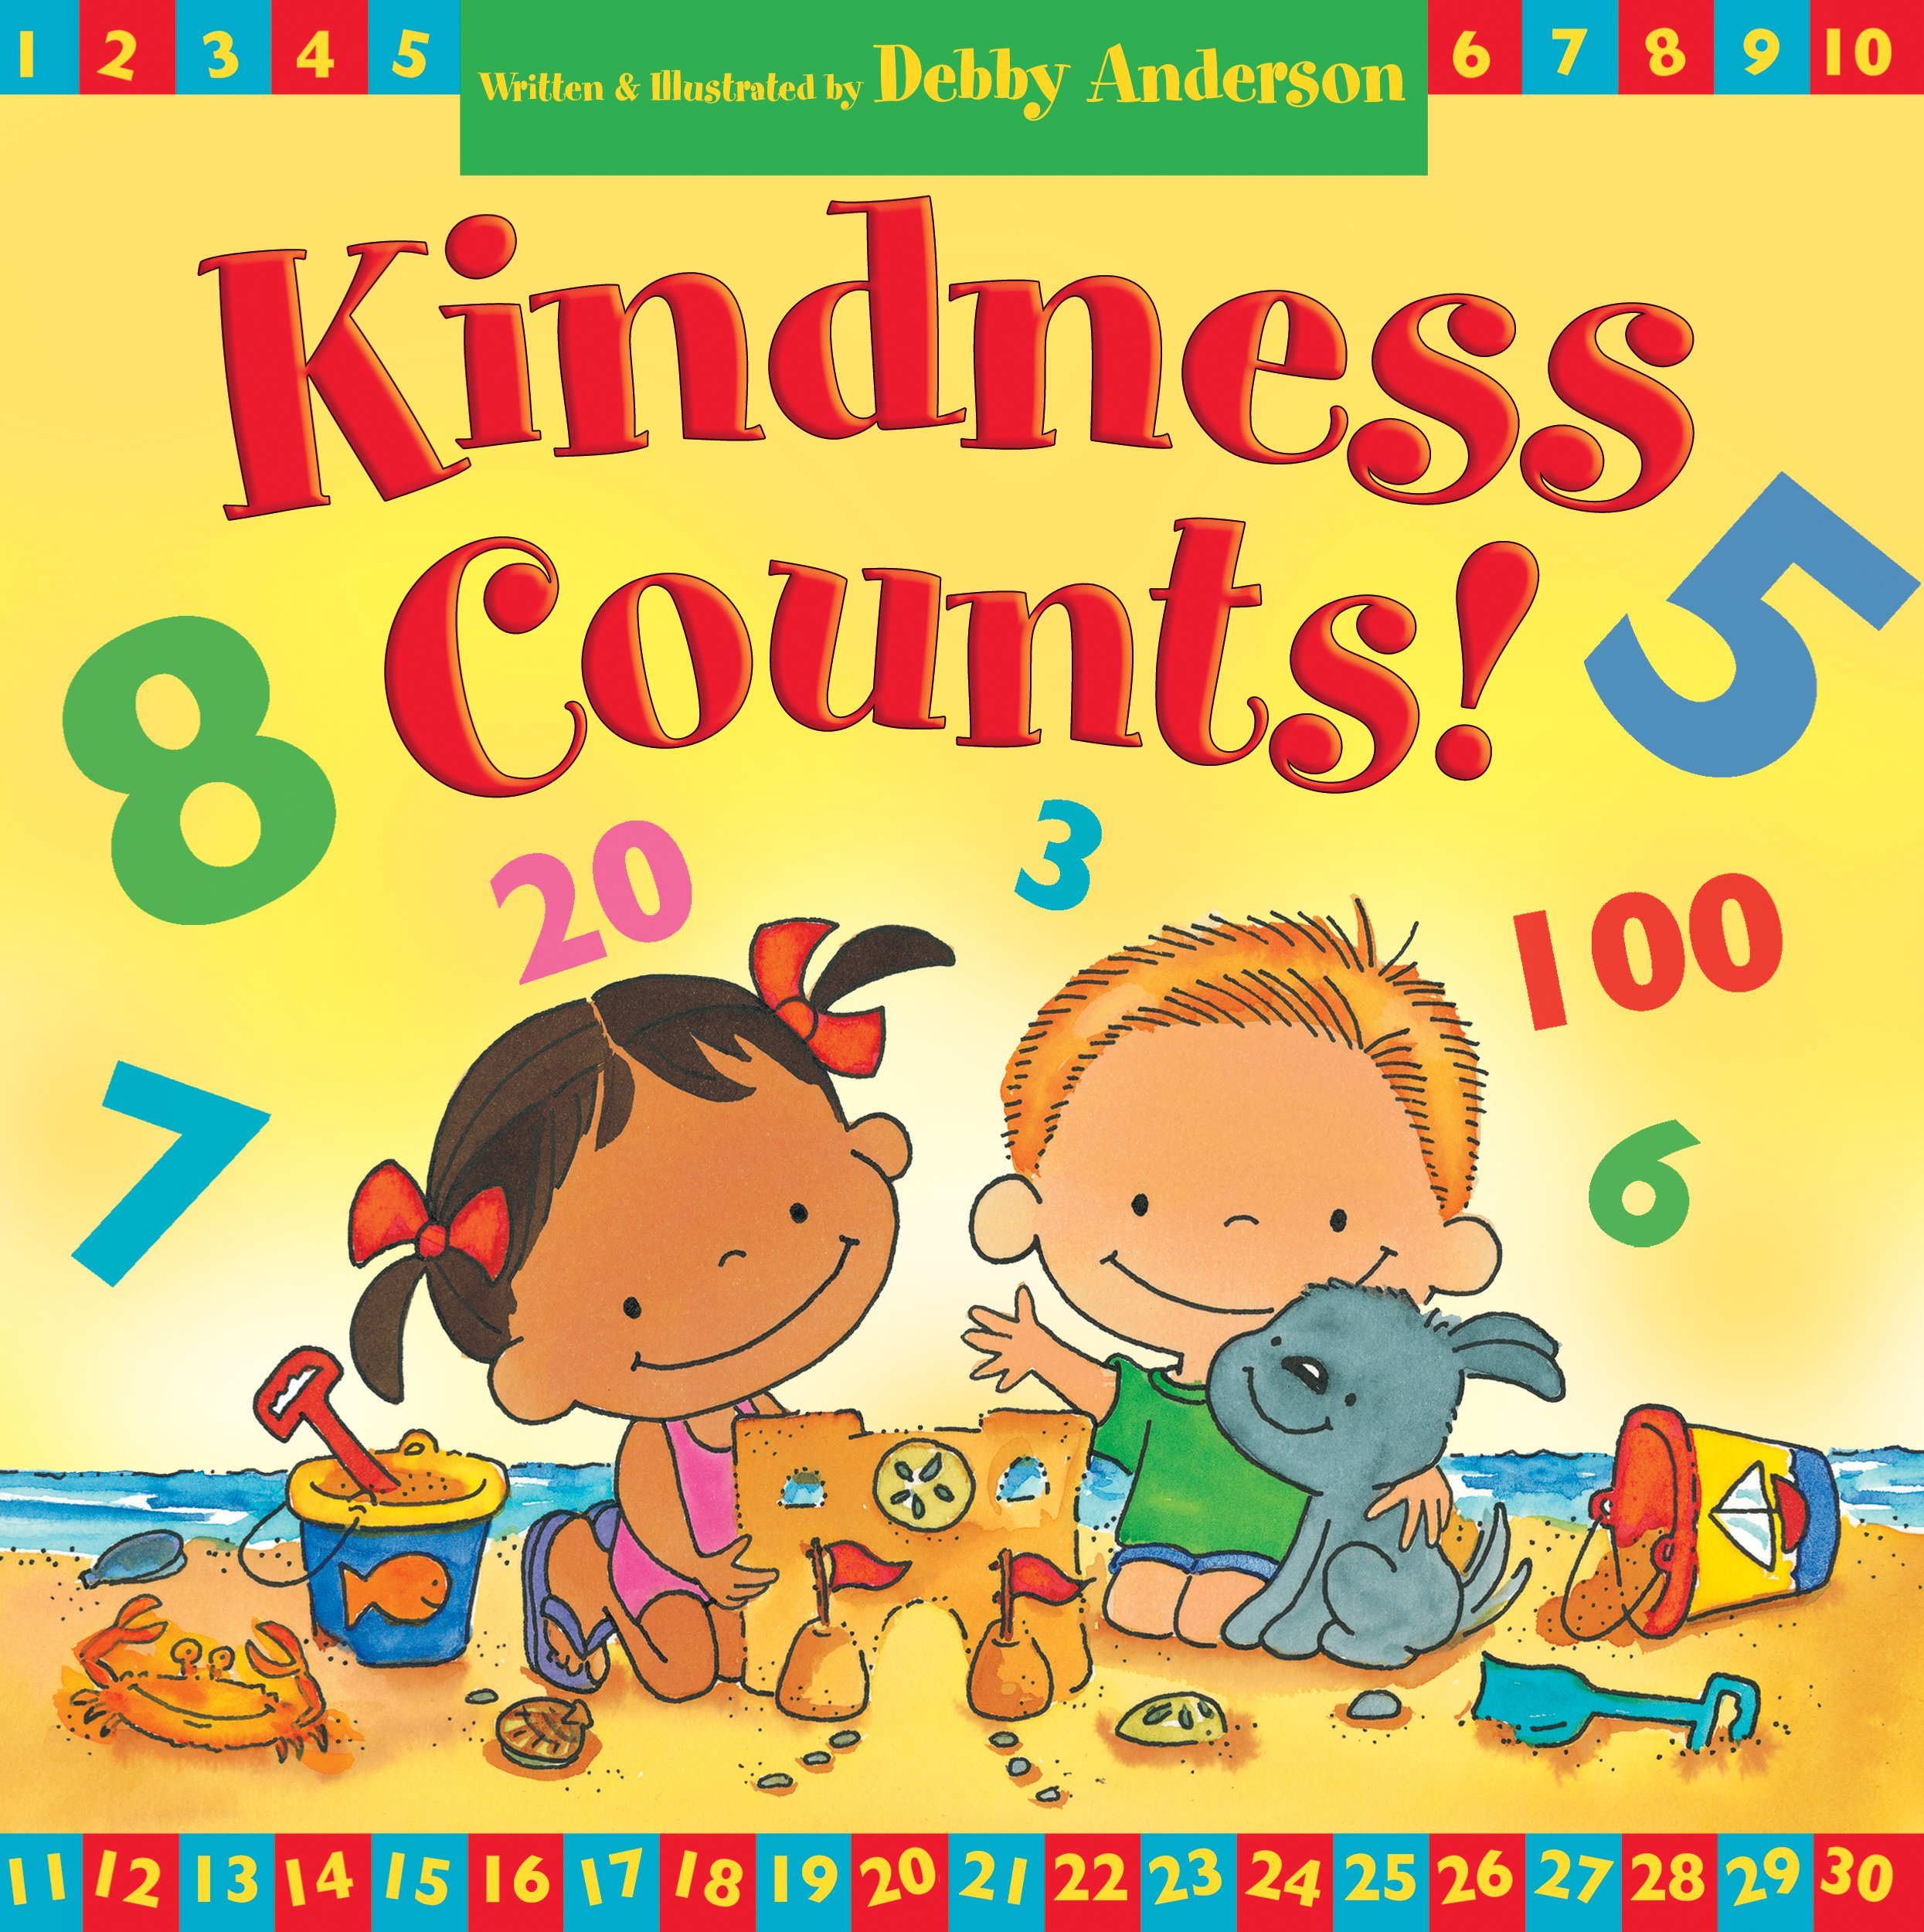 Kindness Counts Debby Anderson